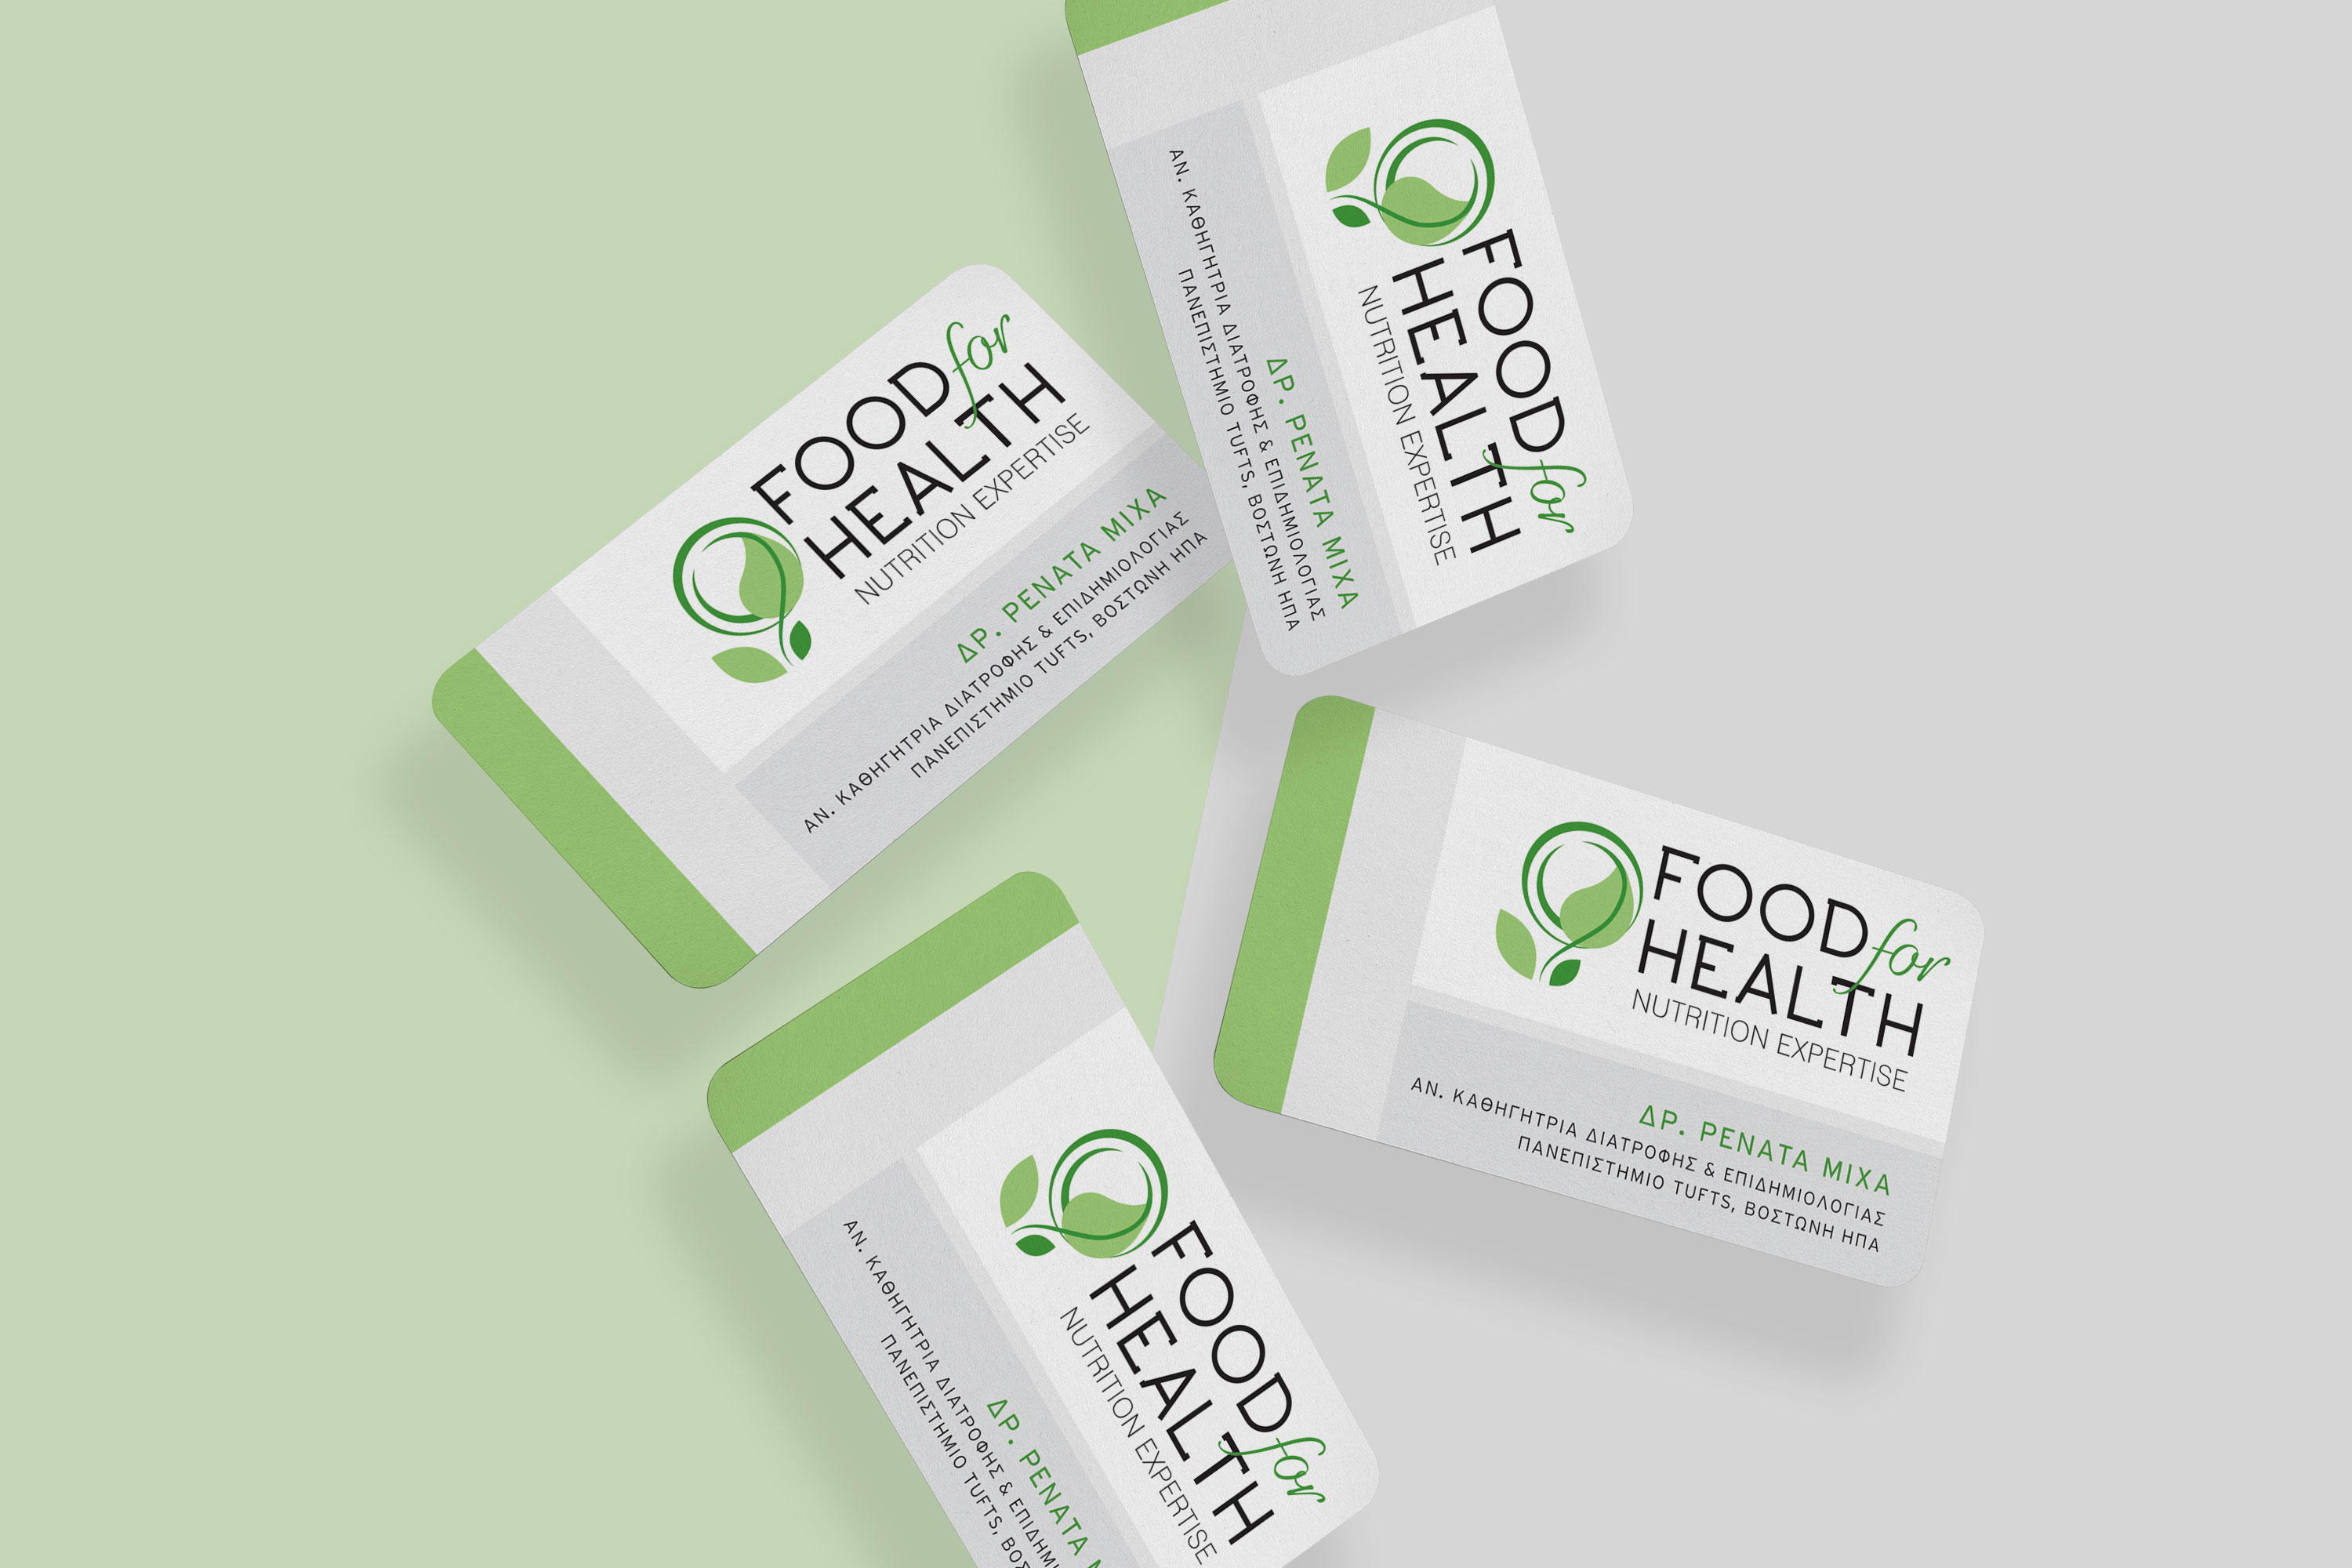 Food-for-Health-Card-4